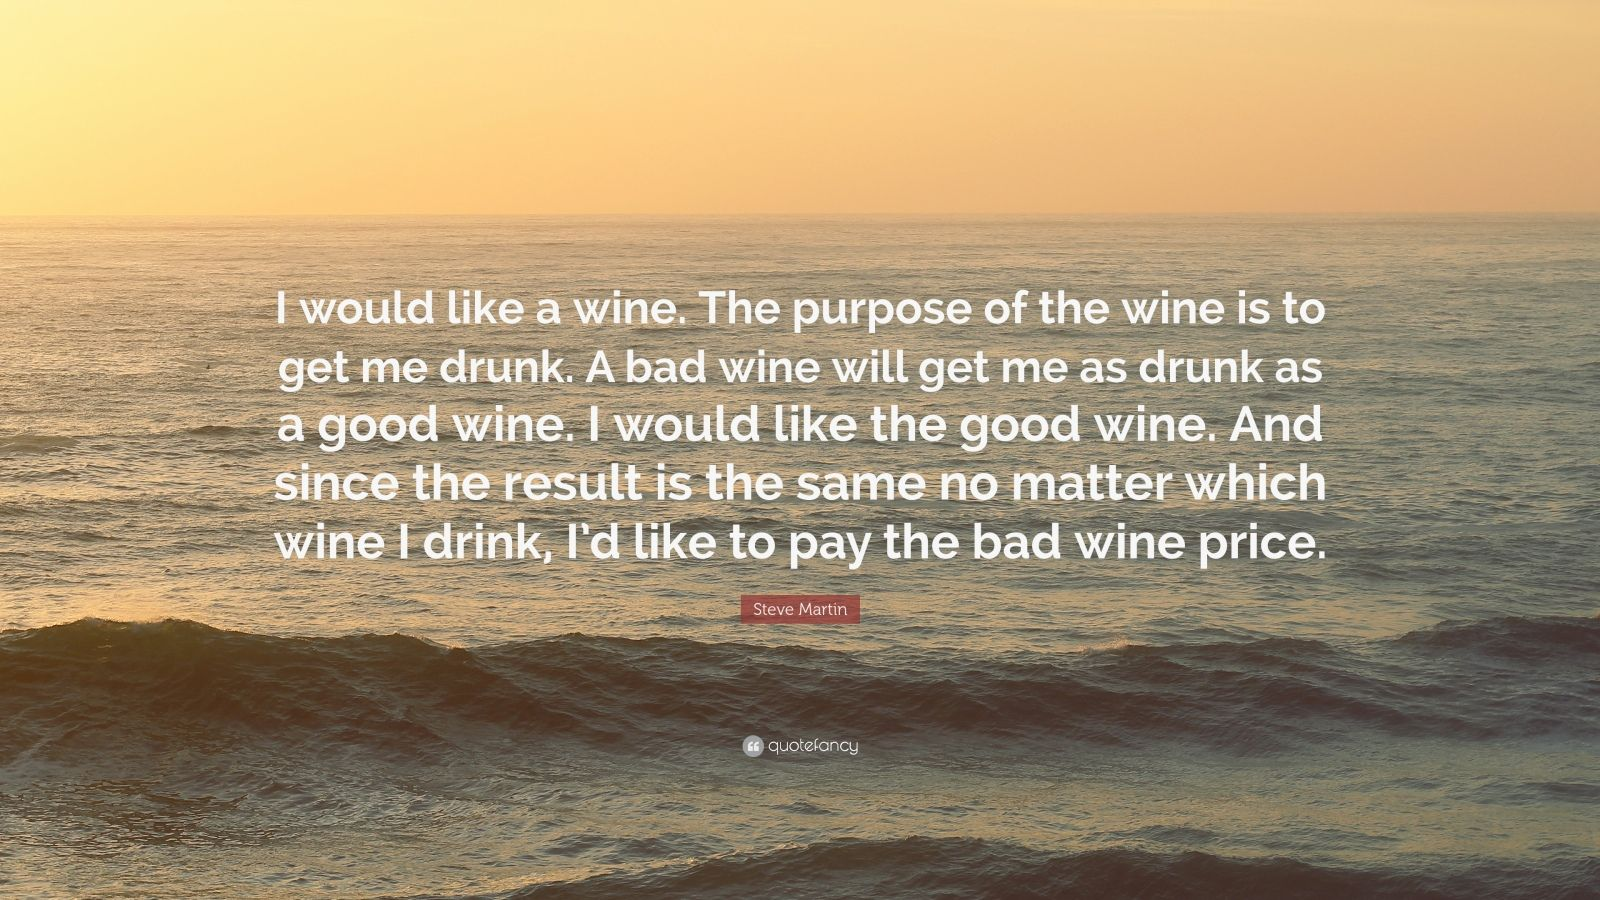 """Steve Martin Quote: """"I would like a wine. The purpose of the wine is to get me drunk. A bad wine will get me as drunk as a good wine. I would like the good wine. And since the result is the same no matter which wine I drink, I'd like to pay the bad wine price."""""""